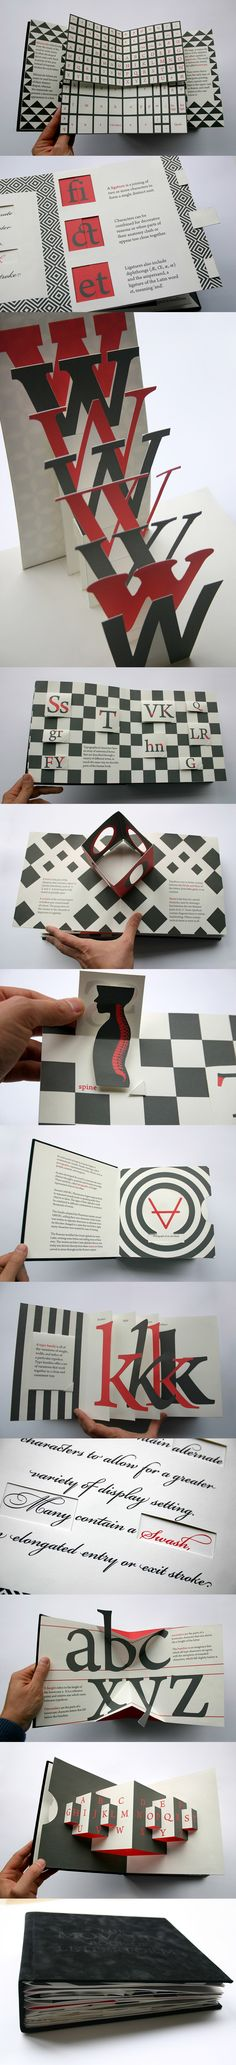 The Movable Book of Letterforms by: Kevin Steele